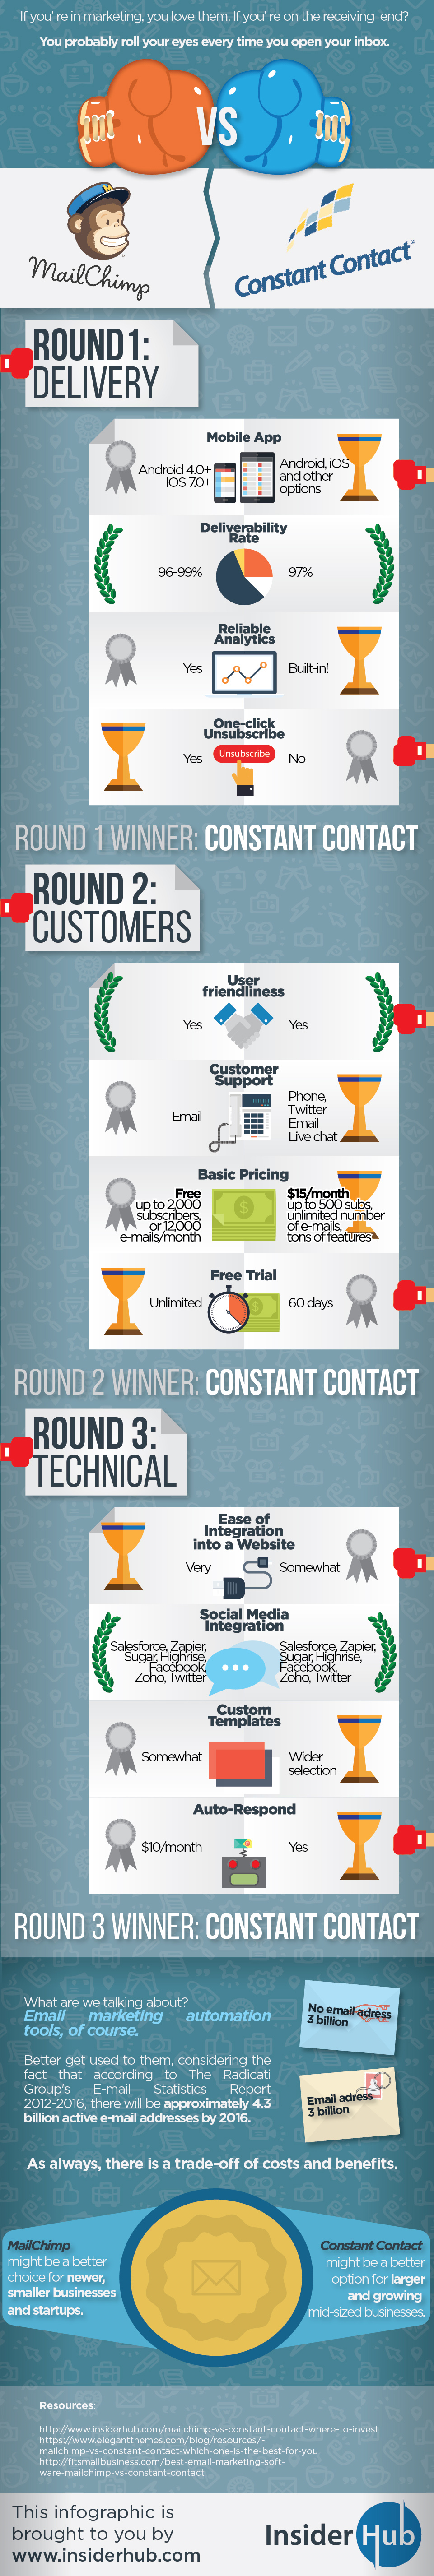 from http://www.insiderhub.com/mailchimp-vs-constant-contact-infographic/